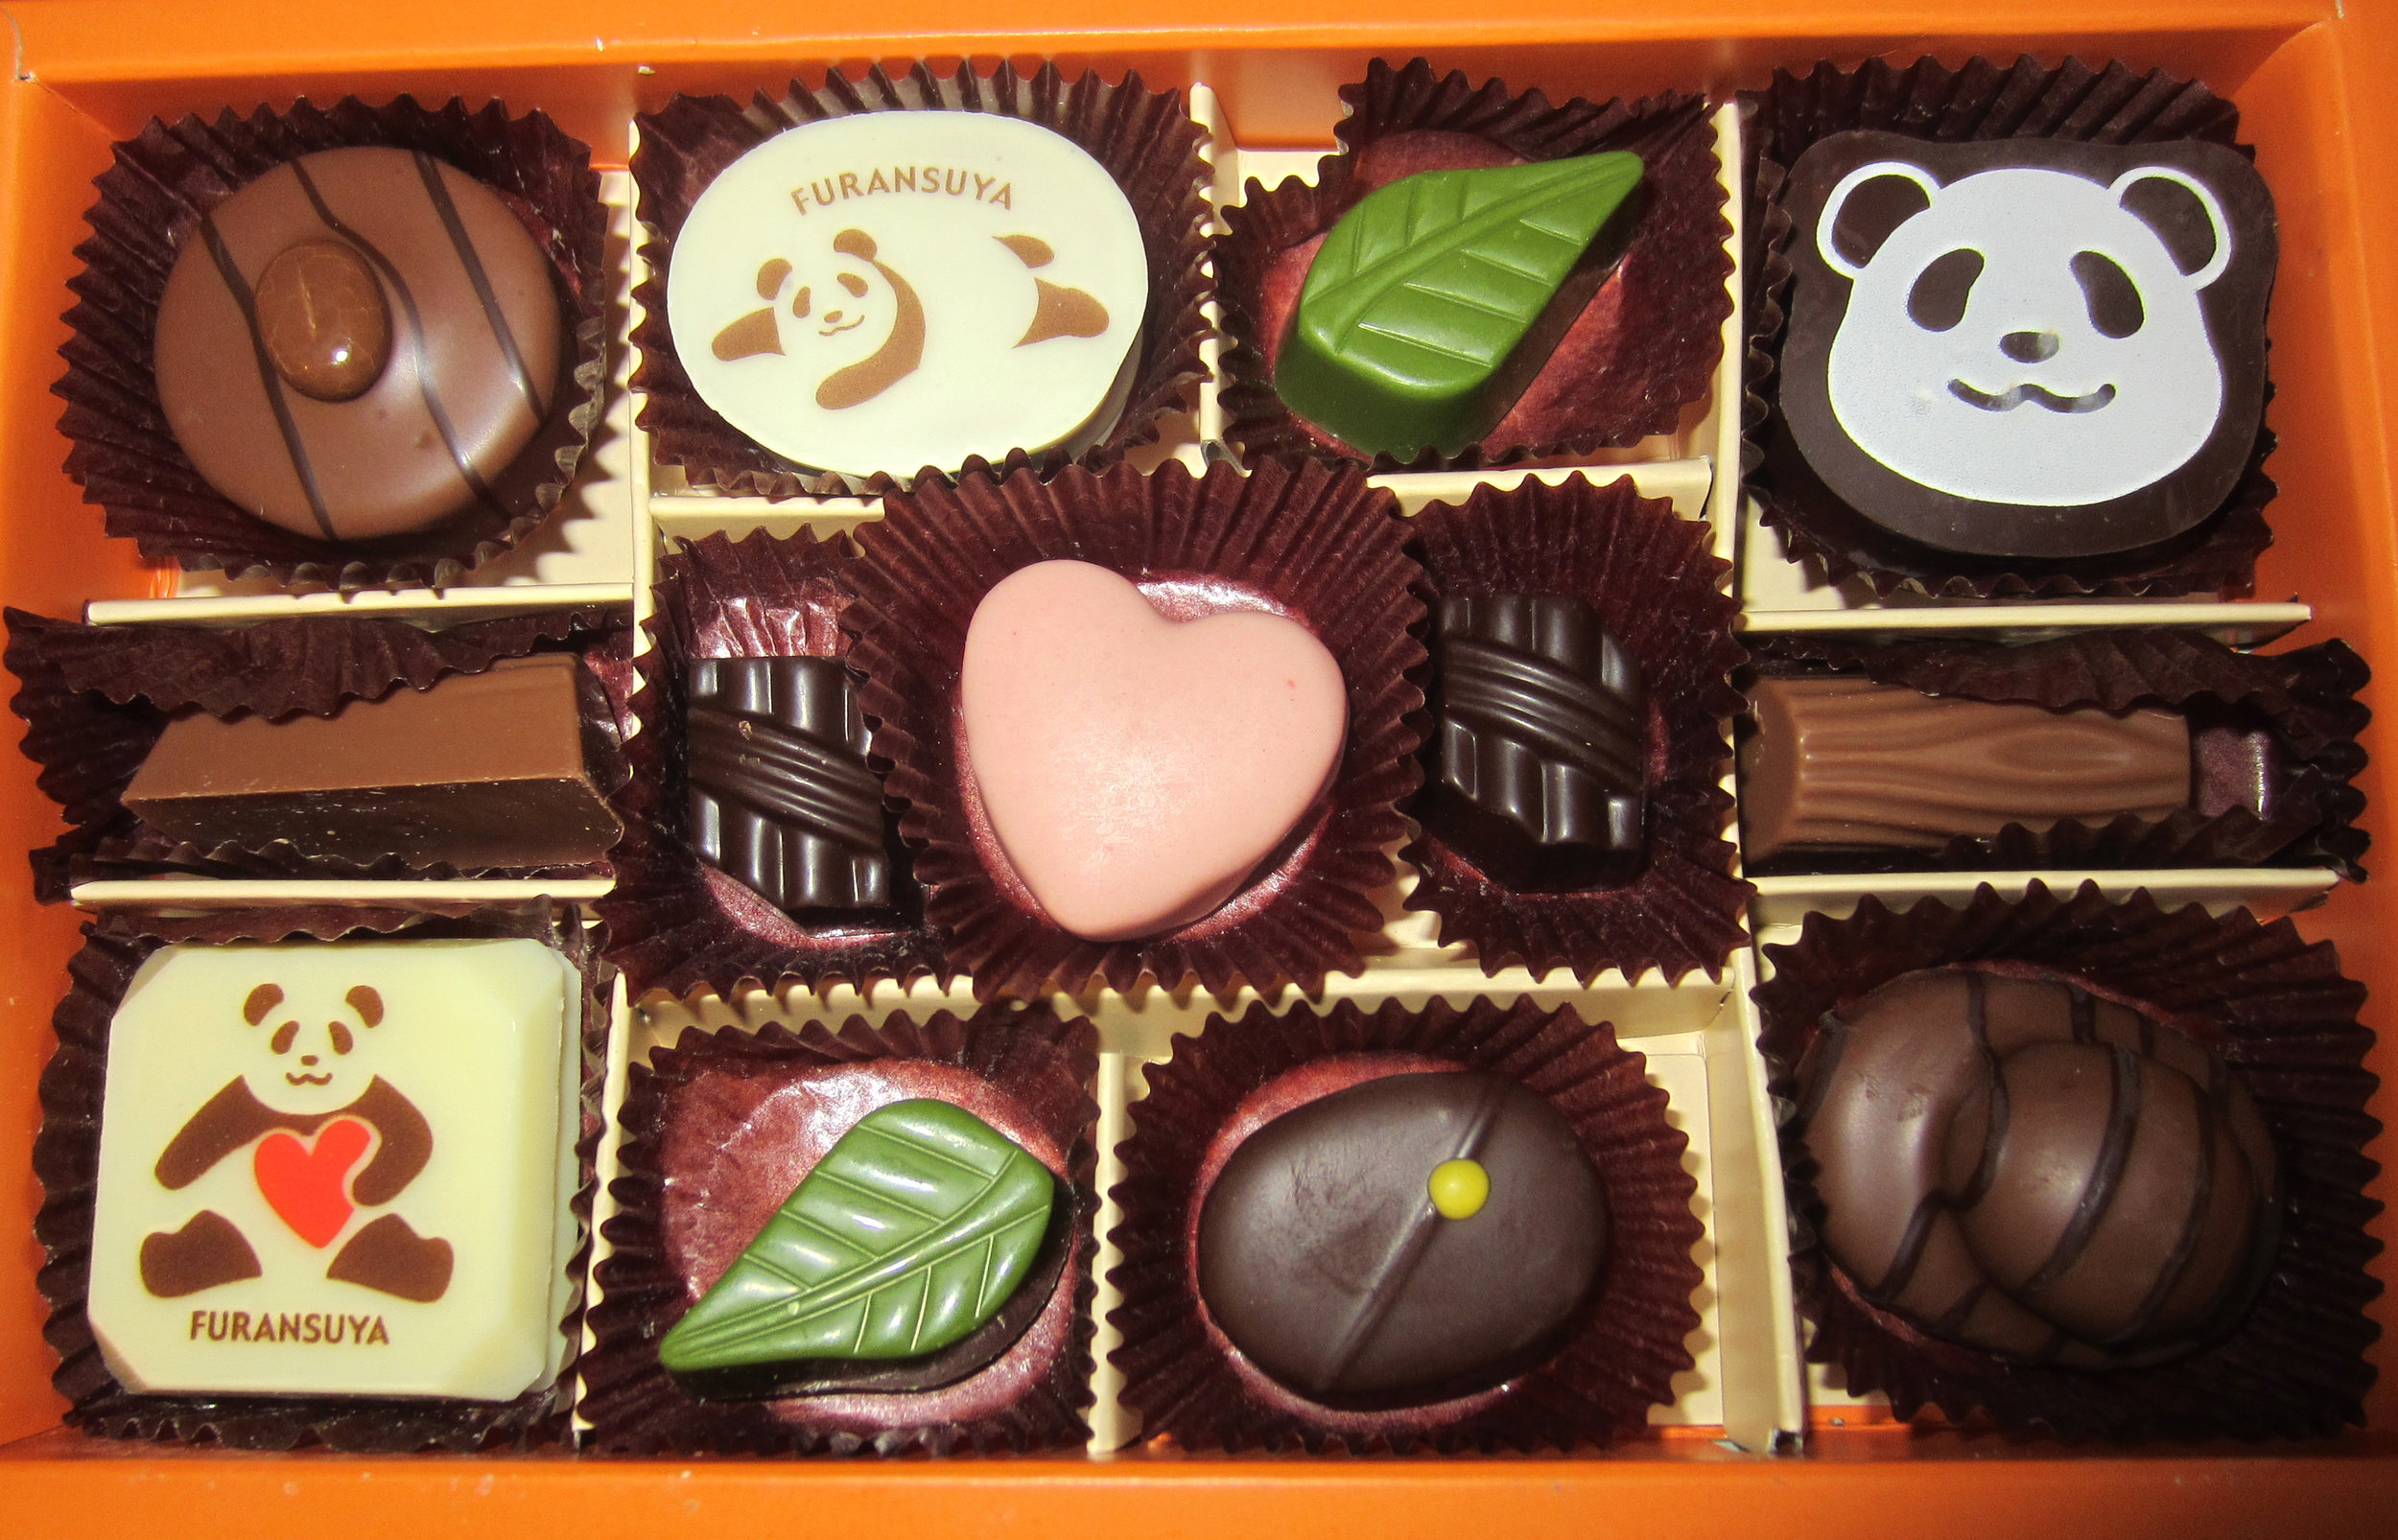 Box of Valentine's Chocolate sold in Okinawa.  Photo by Nelo Hotsuma / Creative Commons